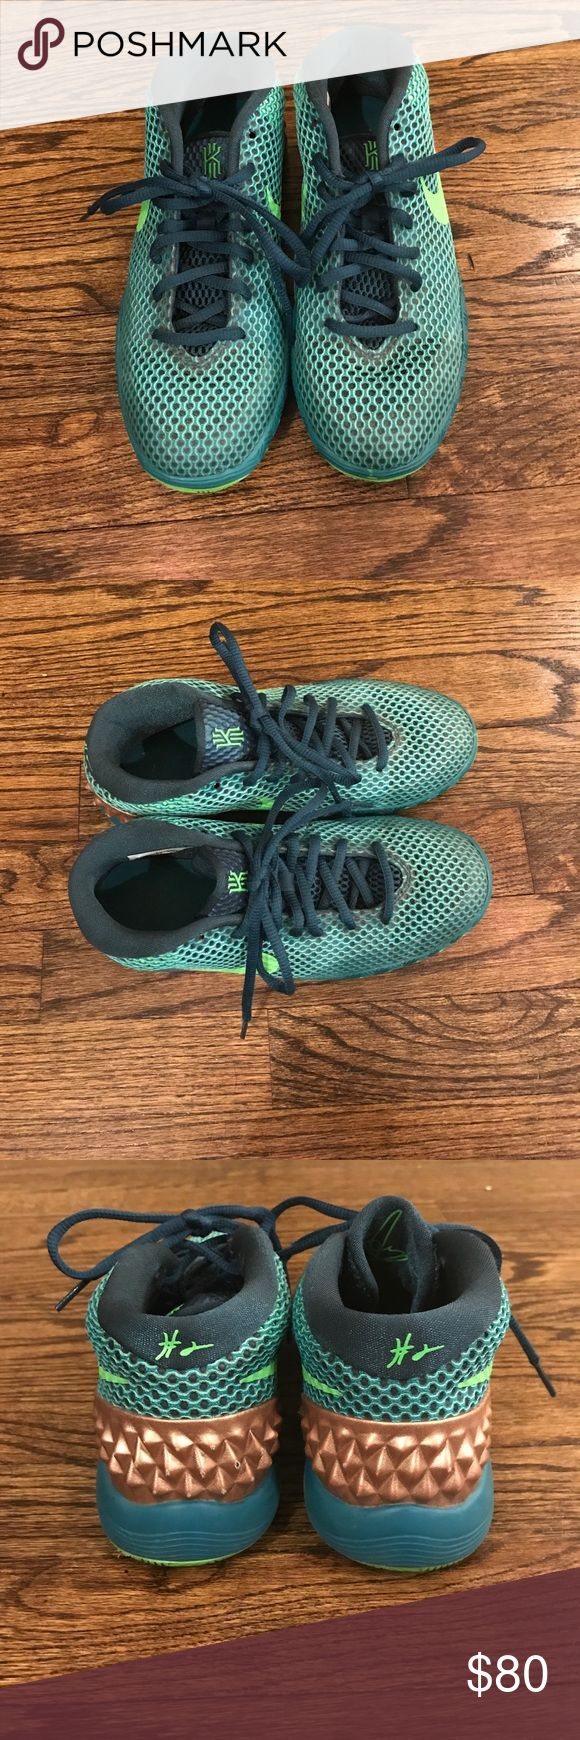 Boys JBY Kyrie Sneakers Boys JBY Kyrie Sneakers • Size 4 • Gently Used • See all pics Nike Shoes Sneakers